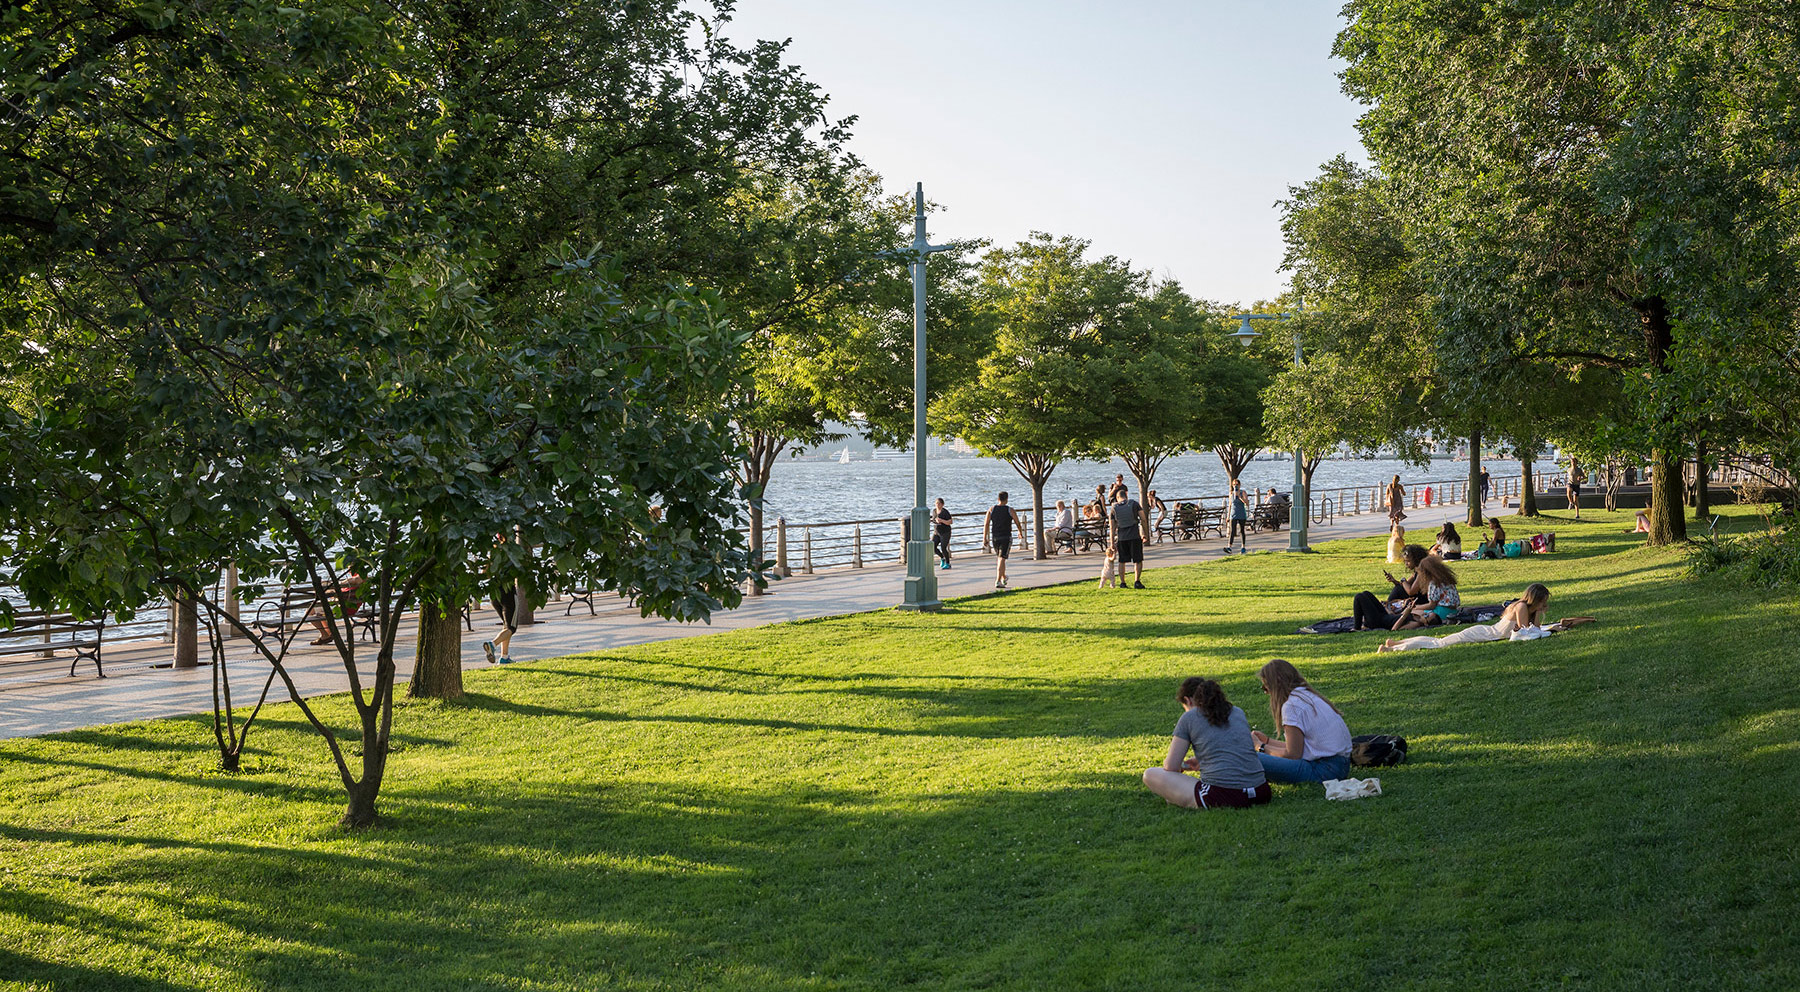 Hudson River Park is the longest riverfront park in the United States—550 acres of athletic and nautical activities